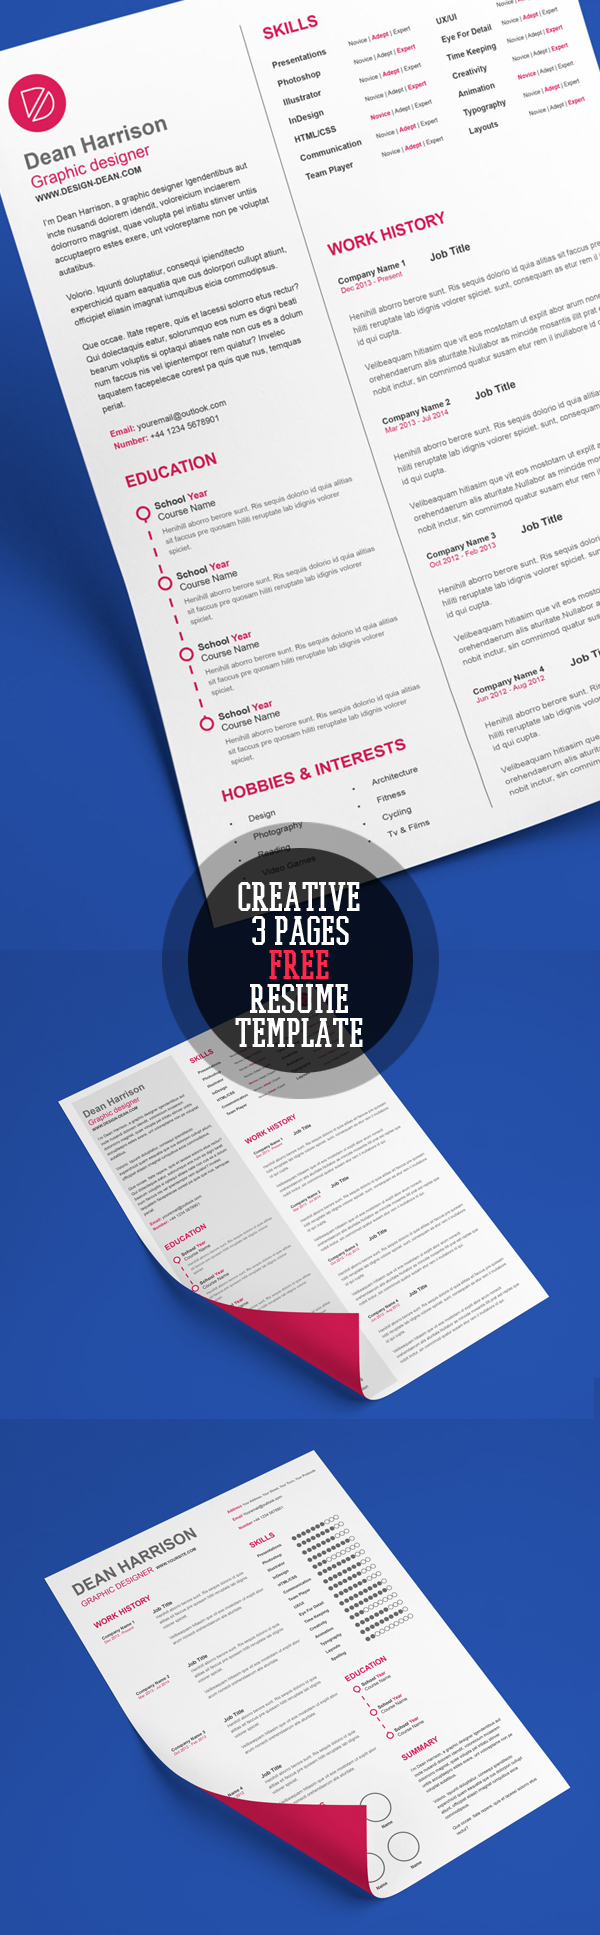 creative a4 free cvresume template - Free Resume Templates For Pages